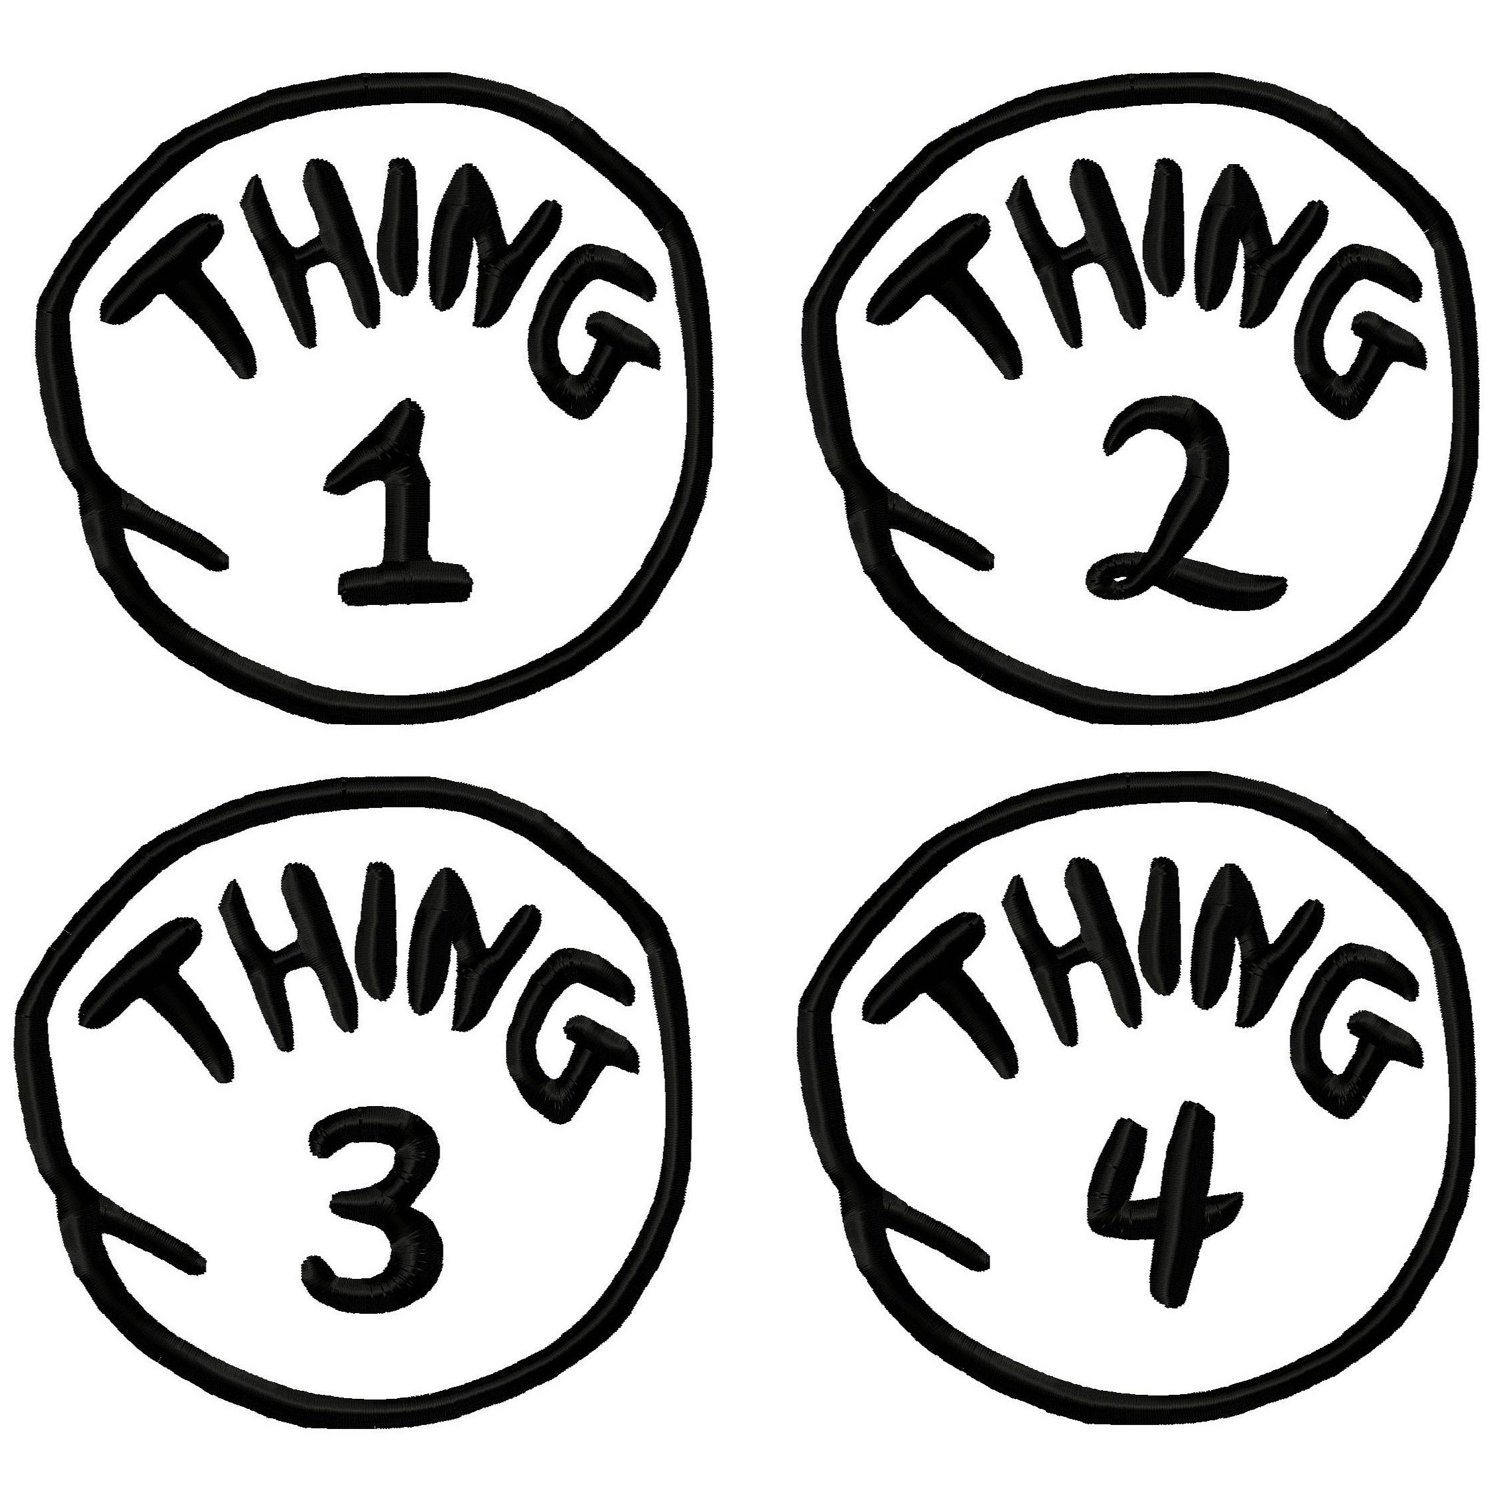 Top Thing 1 and Thing 2 Free Printable Template.